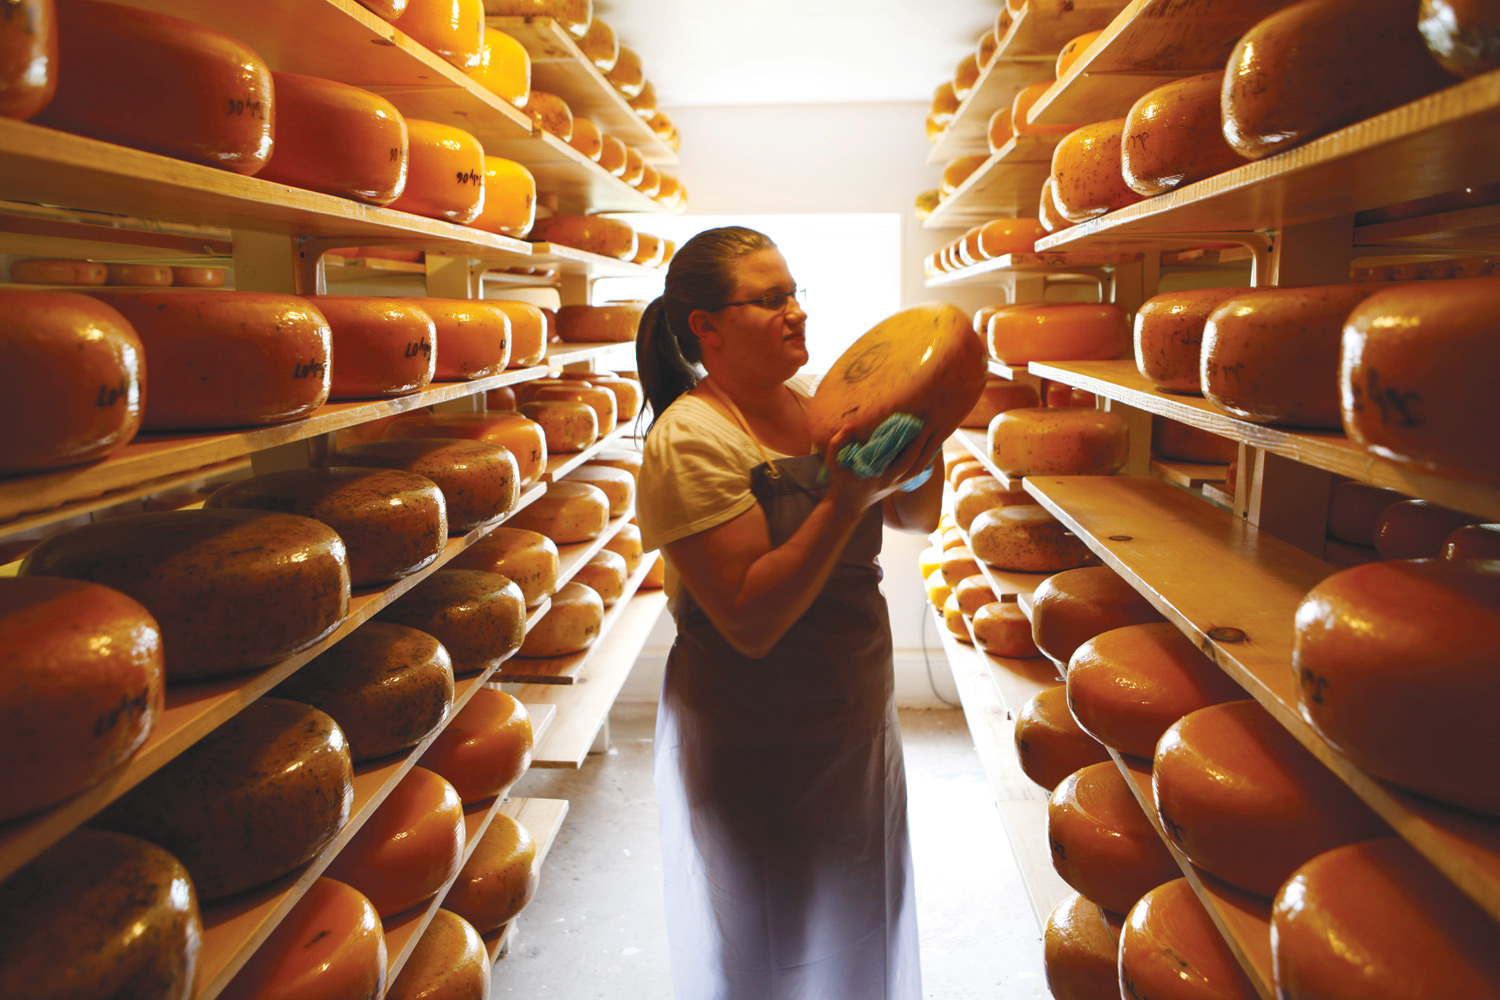 Photo - Margaretha van den Hoek Field inspects some cheese